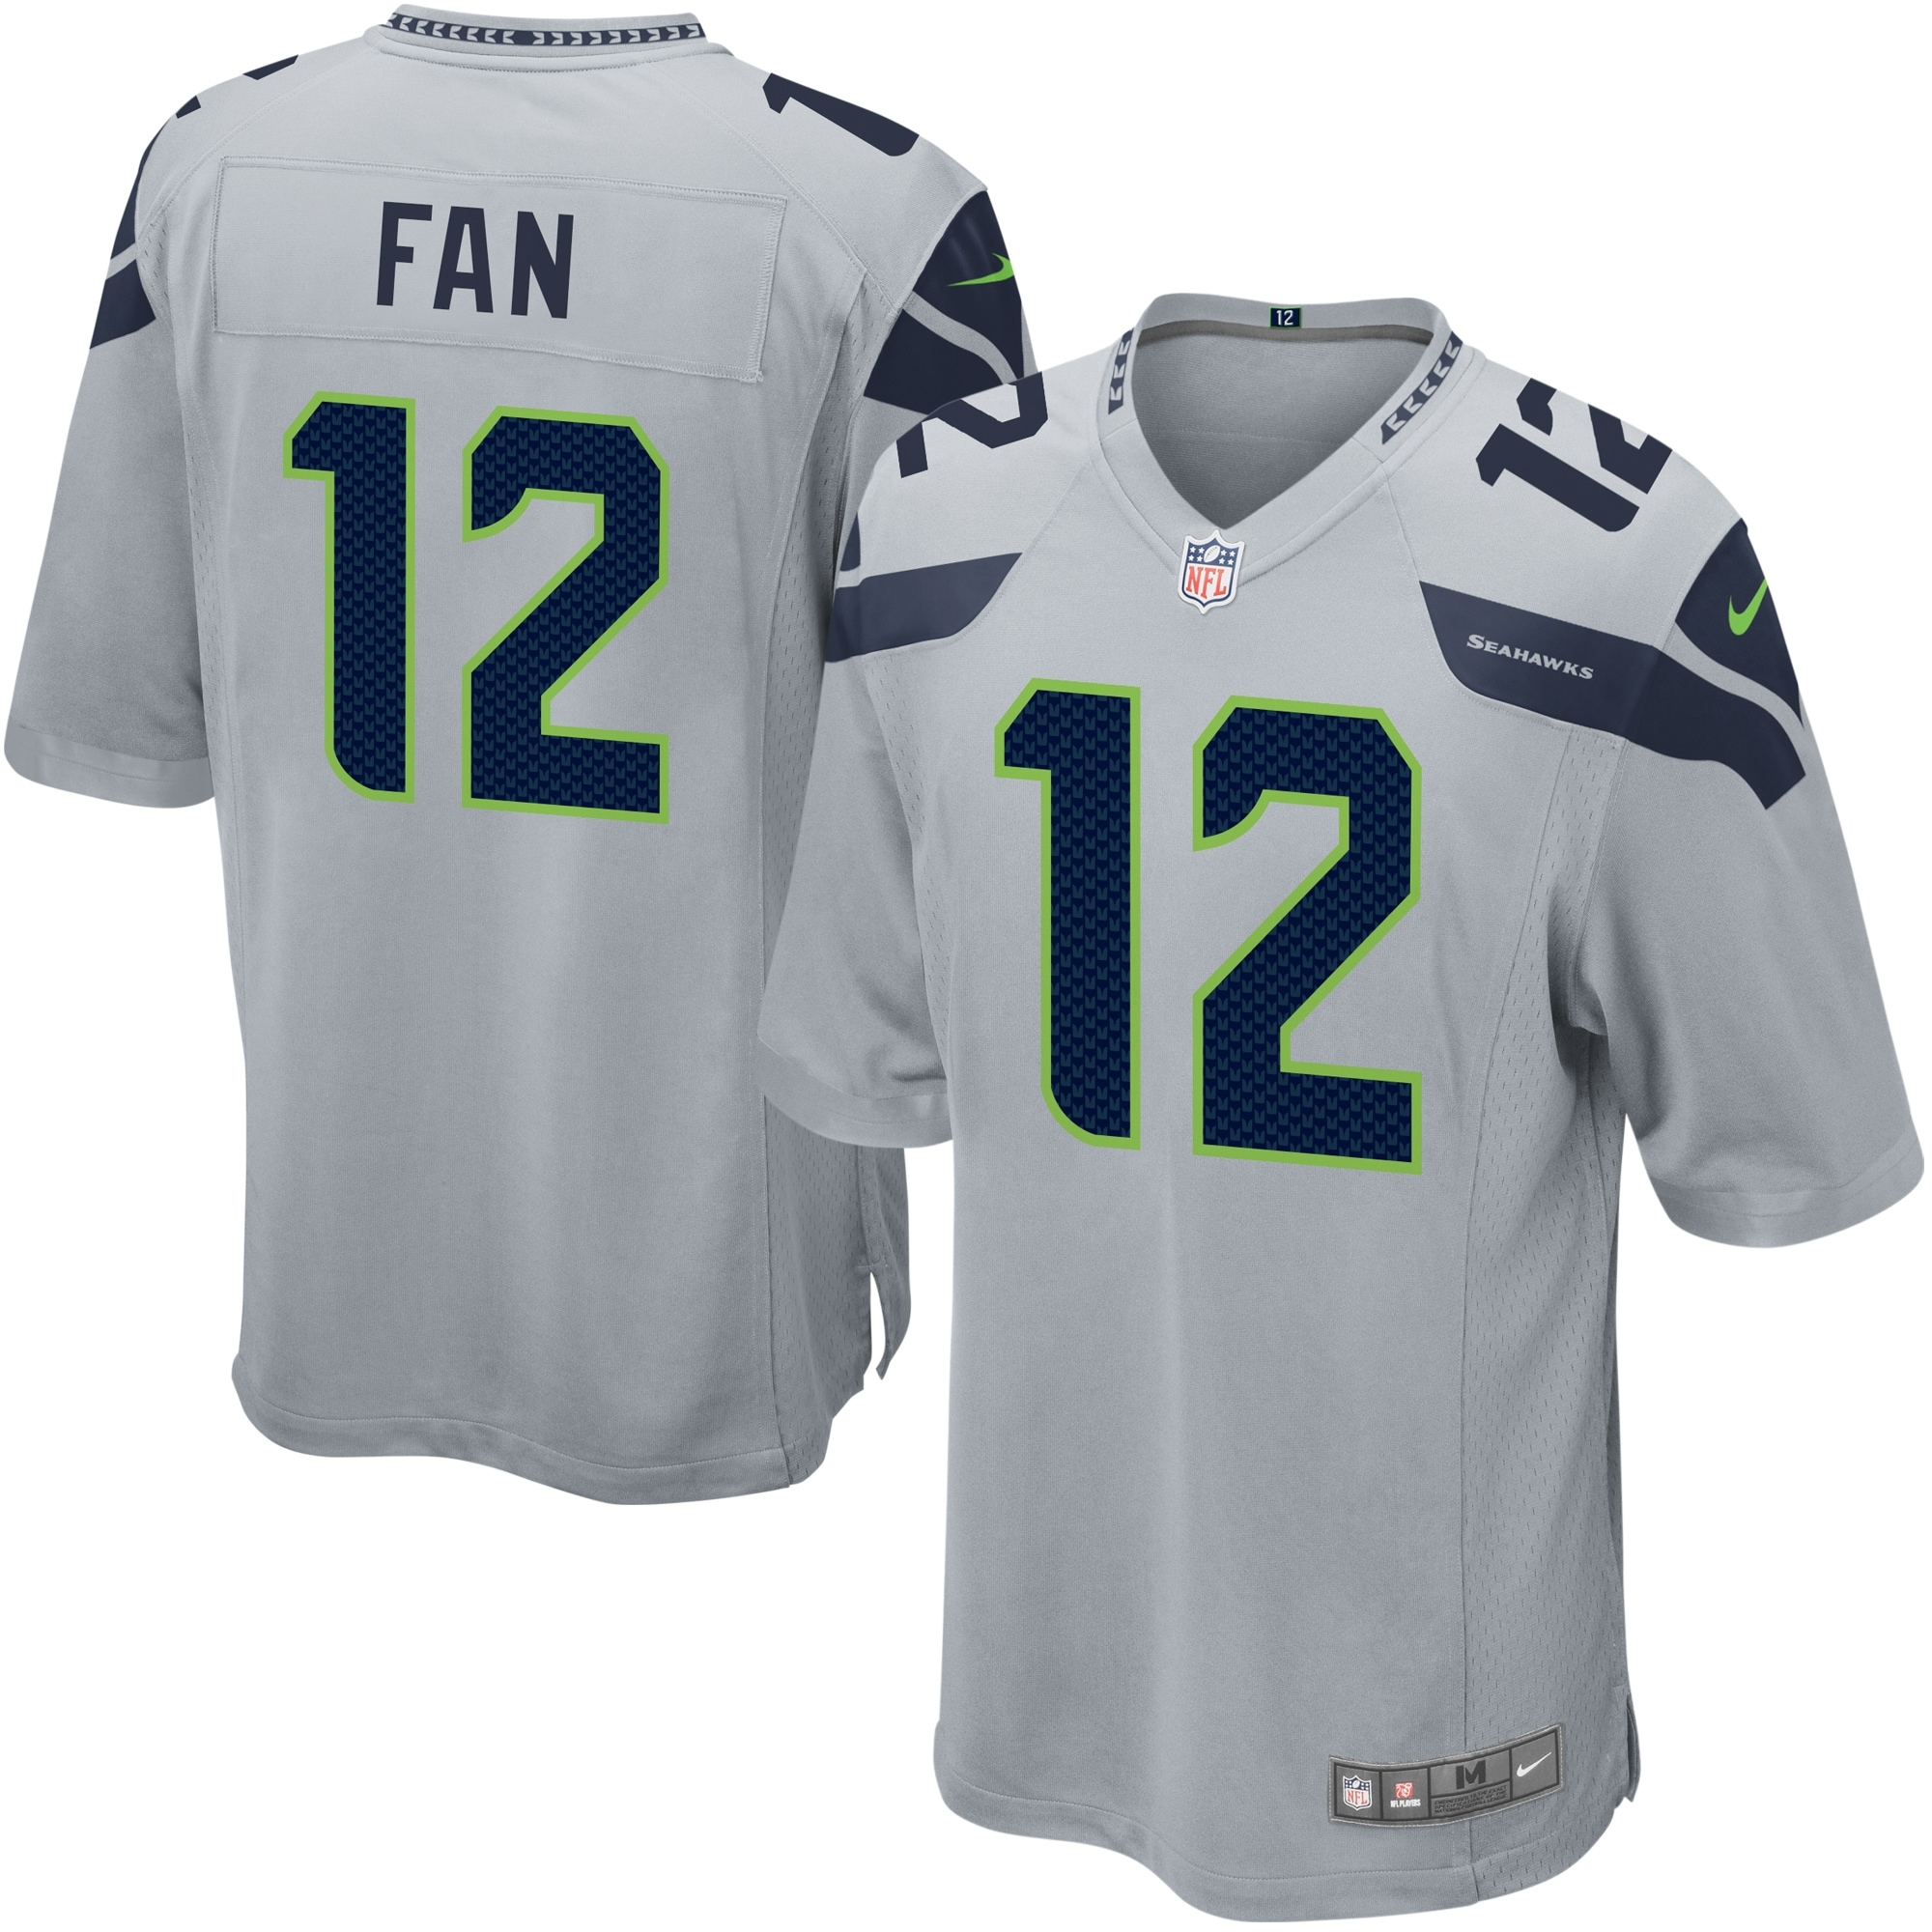 12s Seattle Seahawks Nike Alternate Game Jersey - Gray